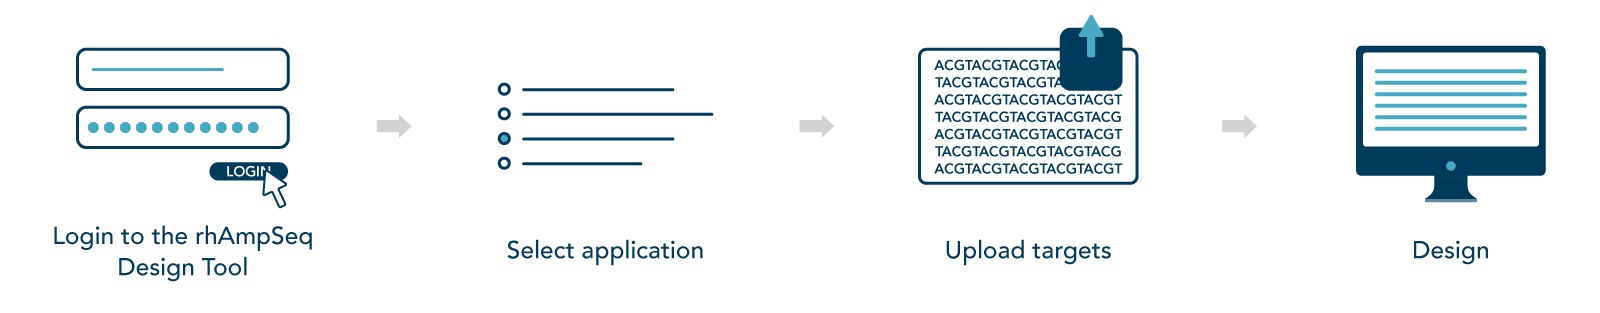 Overview of the rhAmpSeq Design Tool workflow.